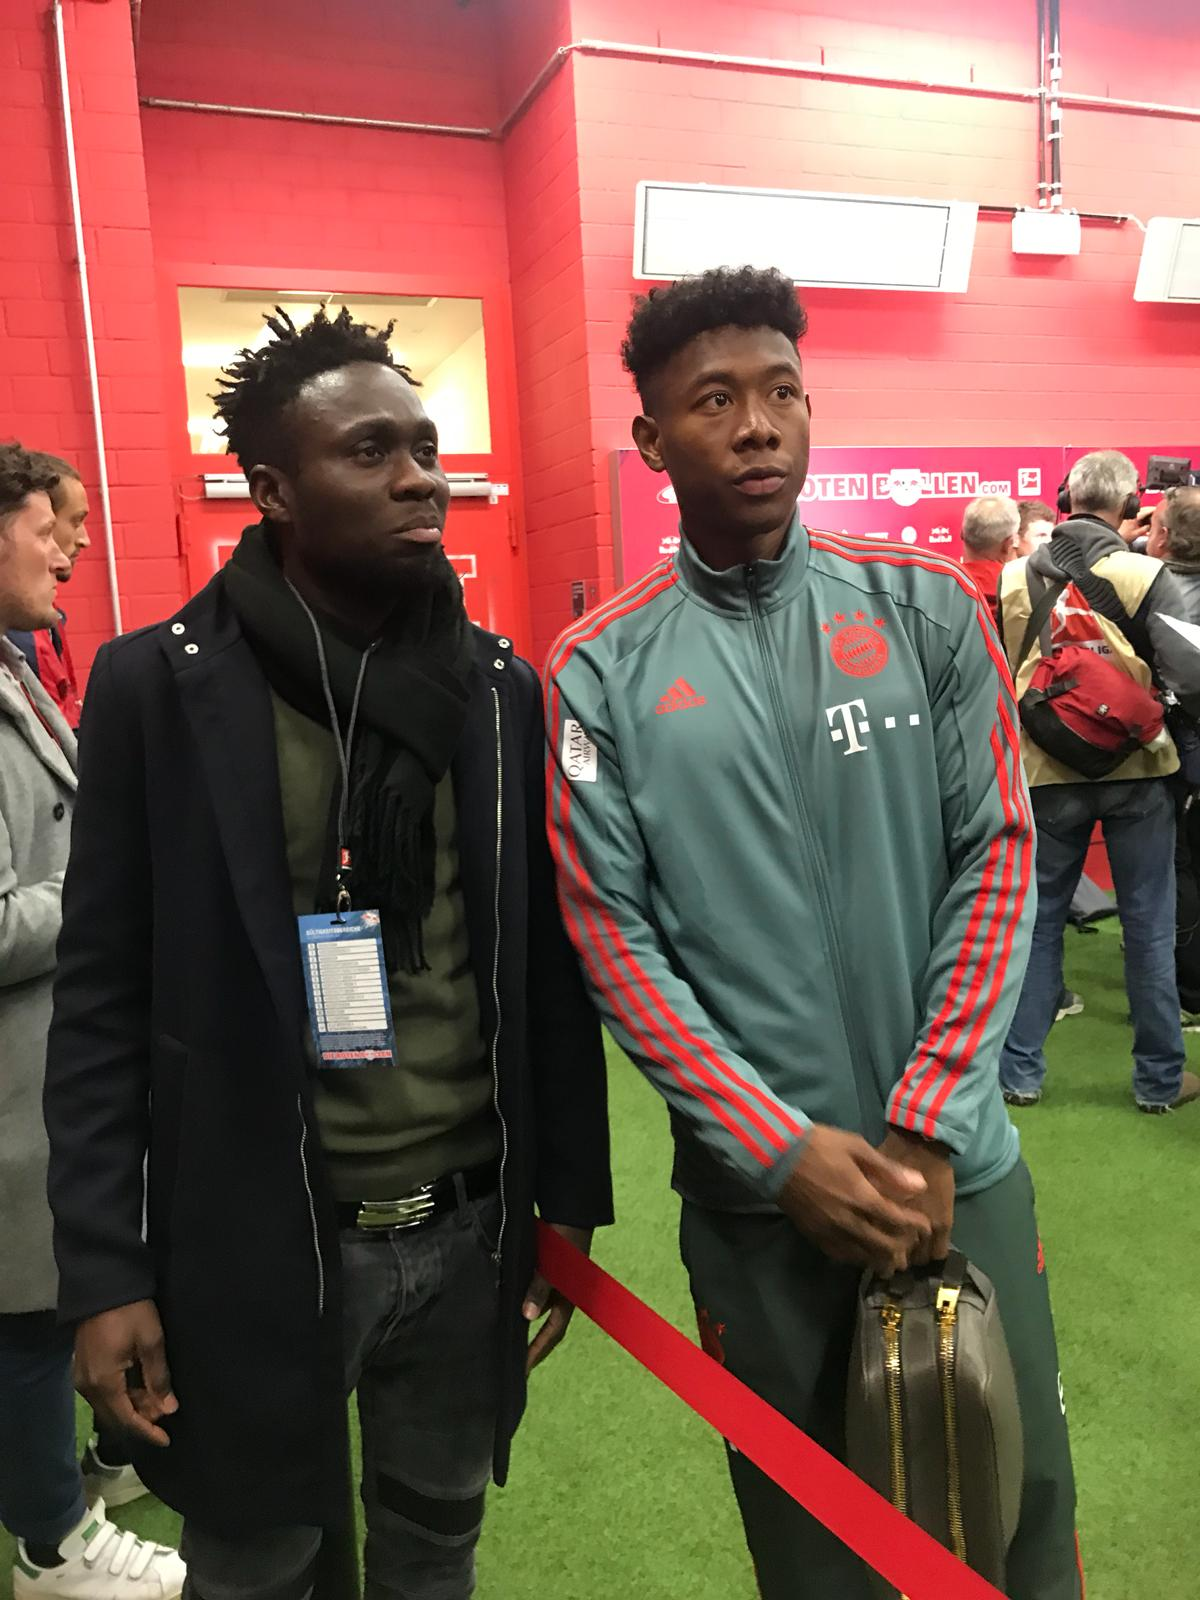 Nigerian U-17 Coaches Never Demanded Money From Me - David Alaba4